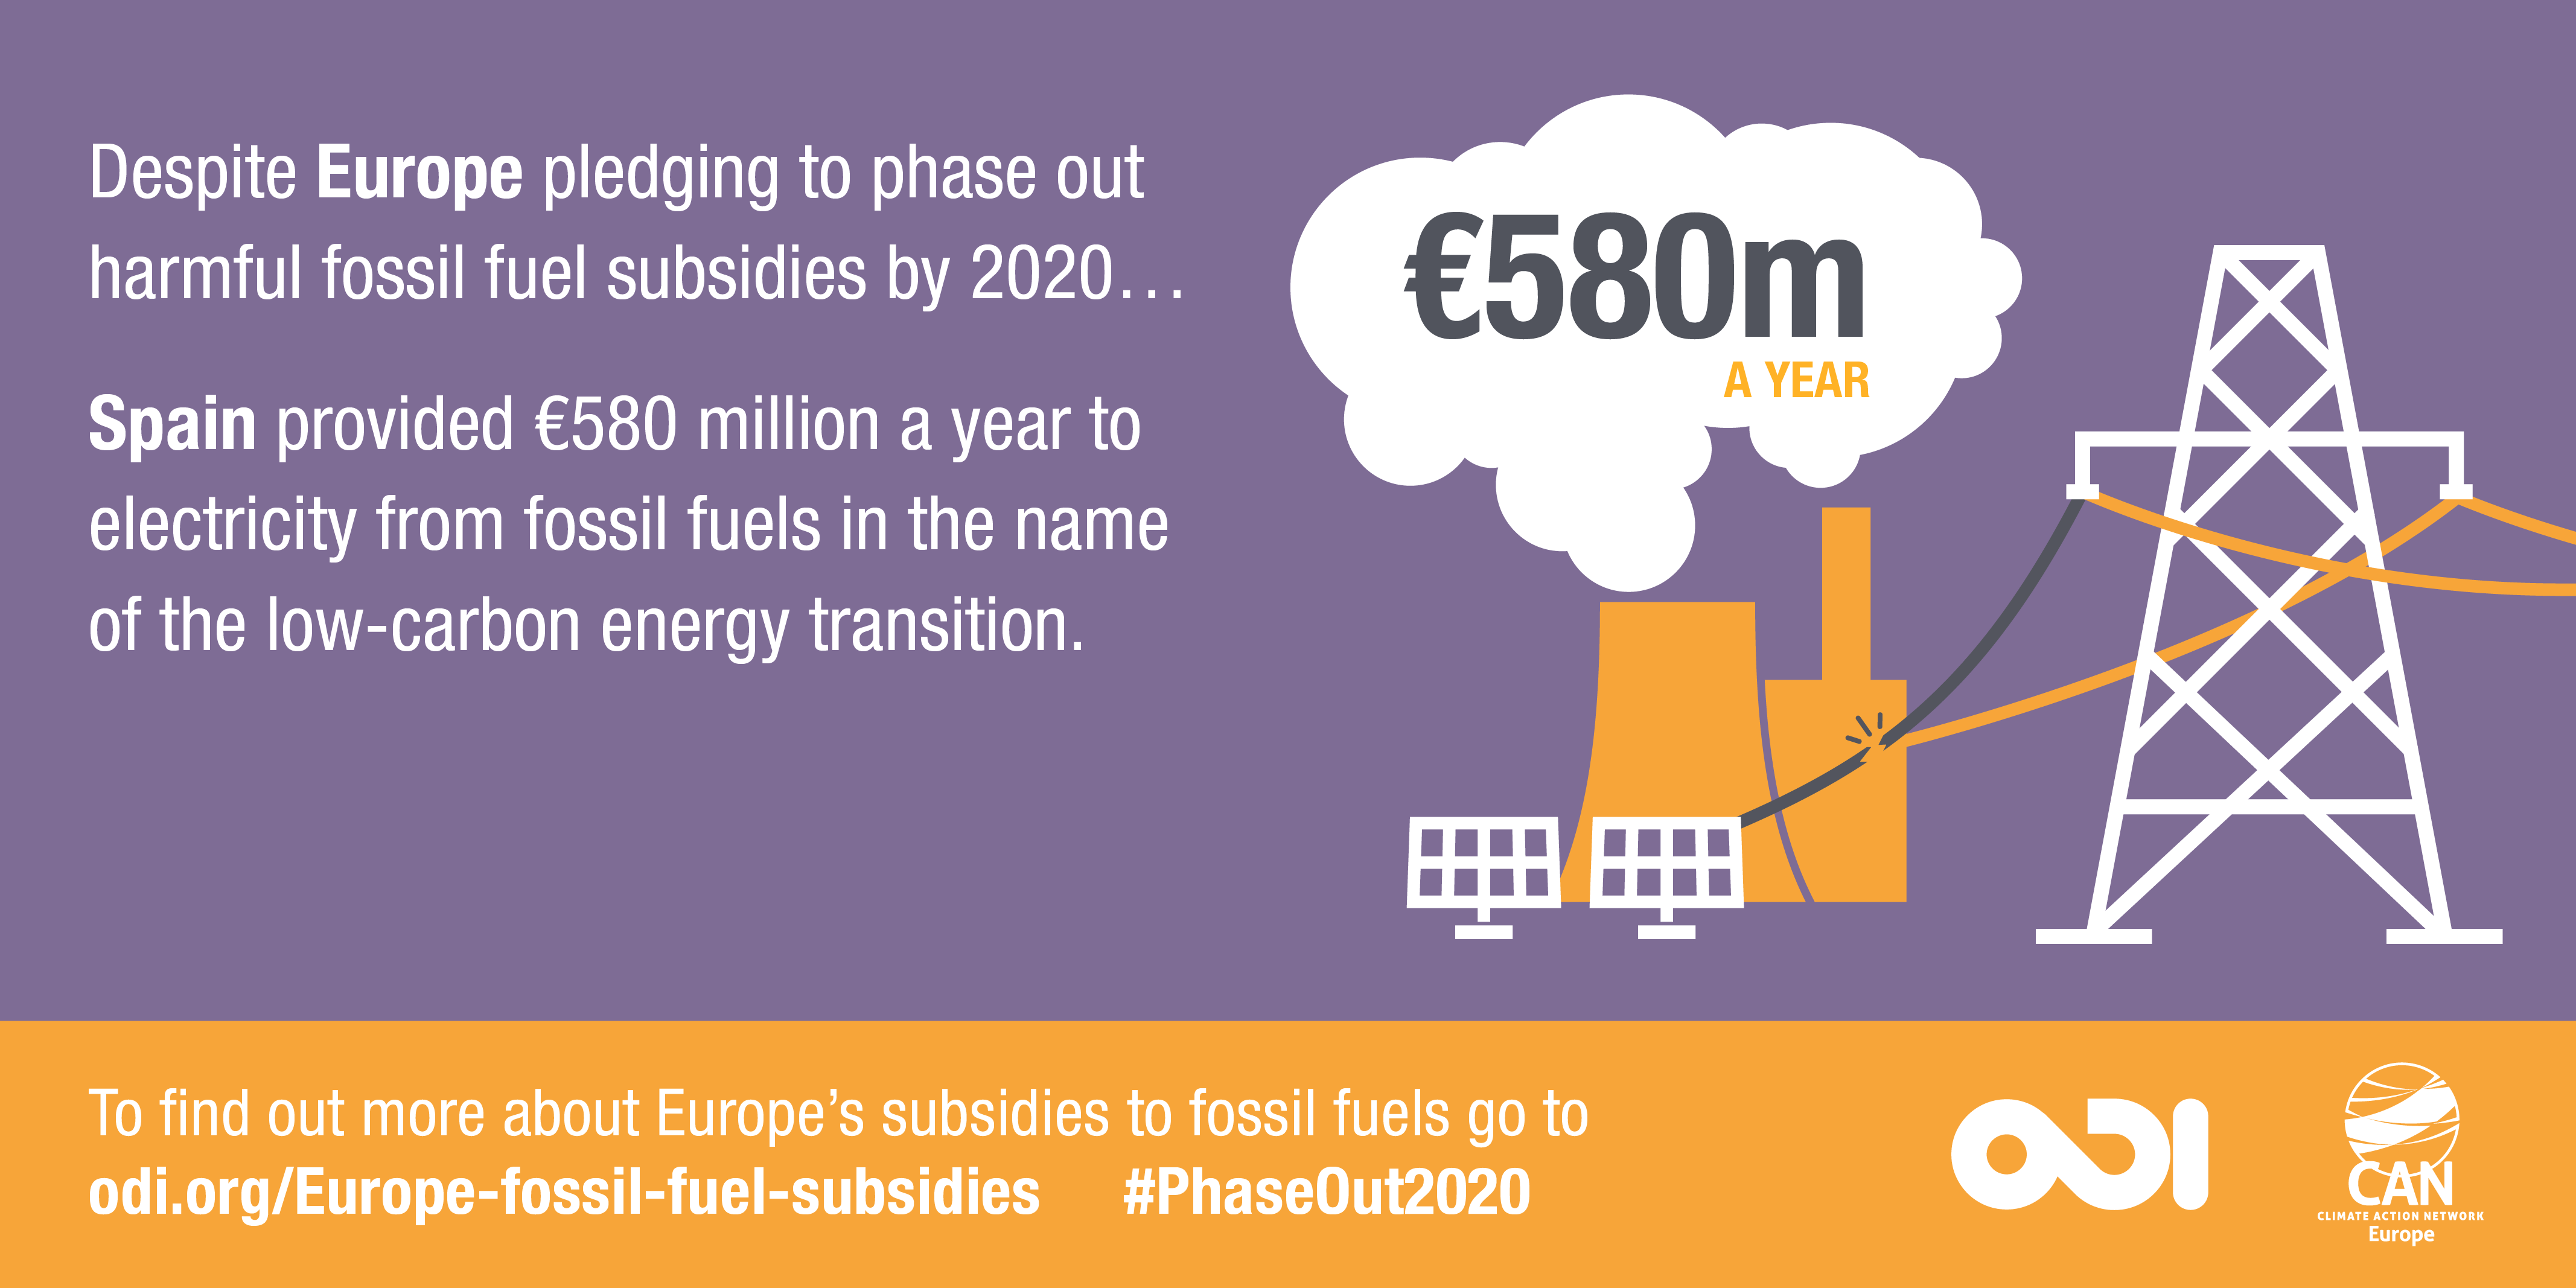 Infographic: Spain provided €580 million a year to electricity from fossil fuels in the name of the low-carbon energy transition.